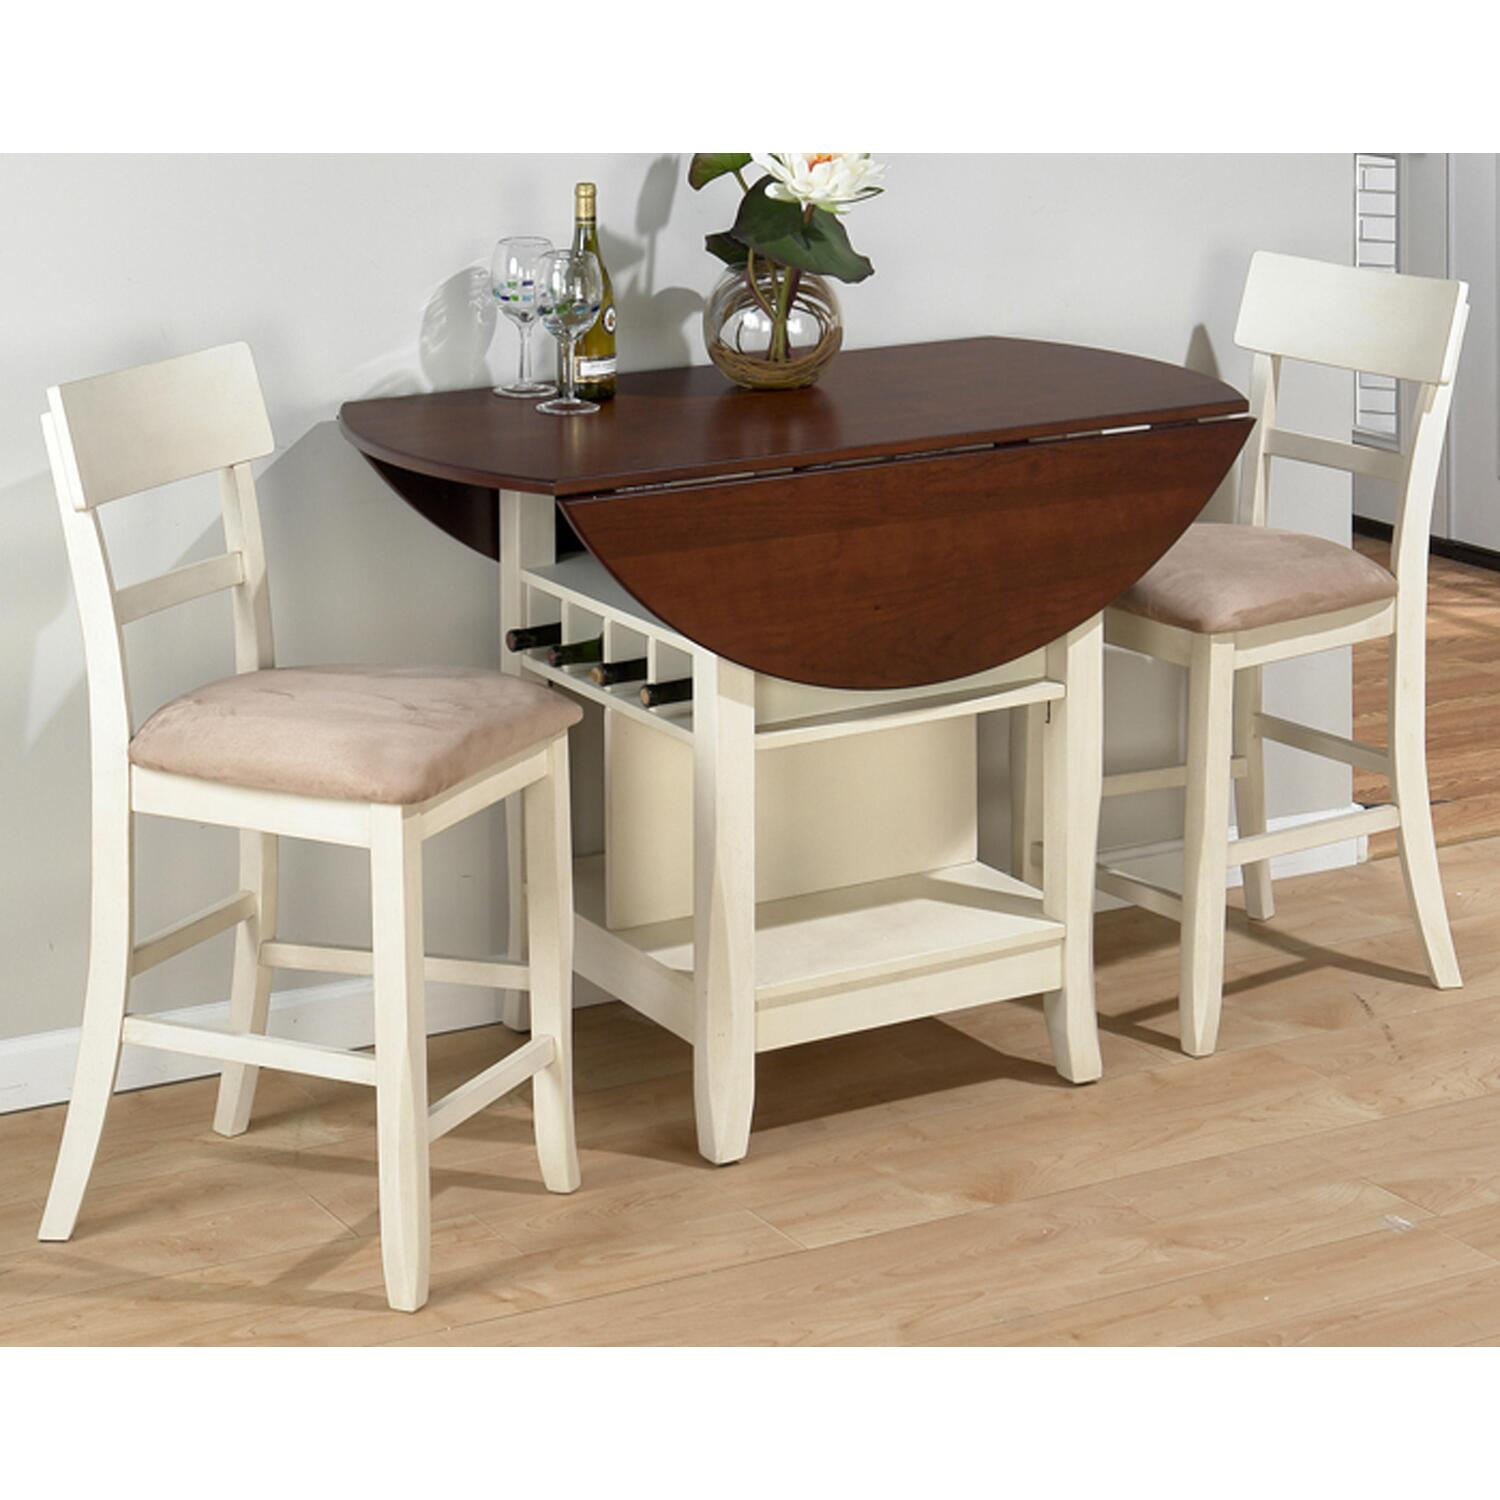 dining table drop leaf dining table chairs small kitchen table set Drop Leaf Small Table Set